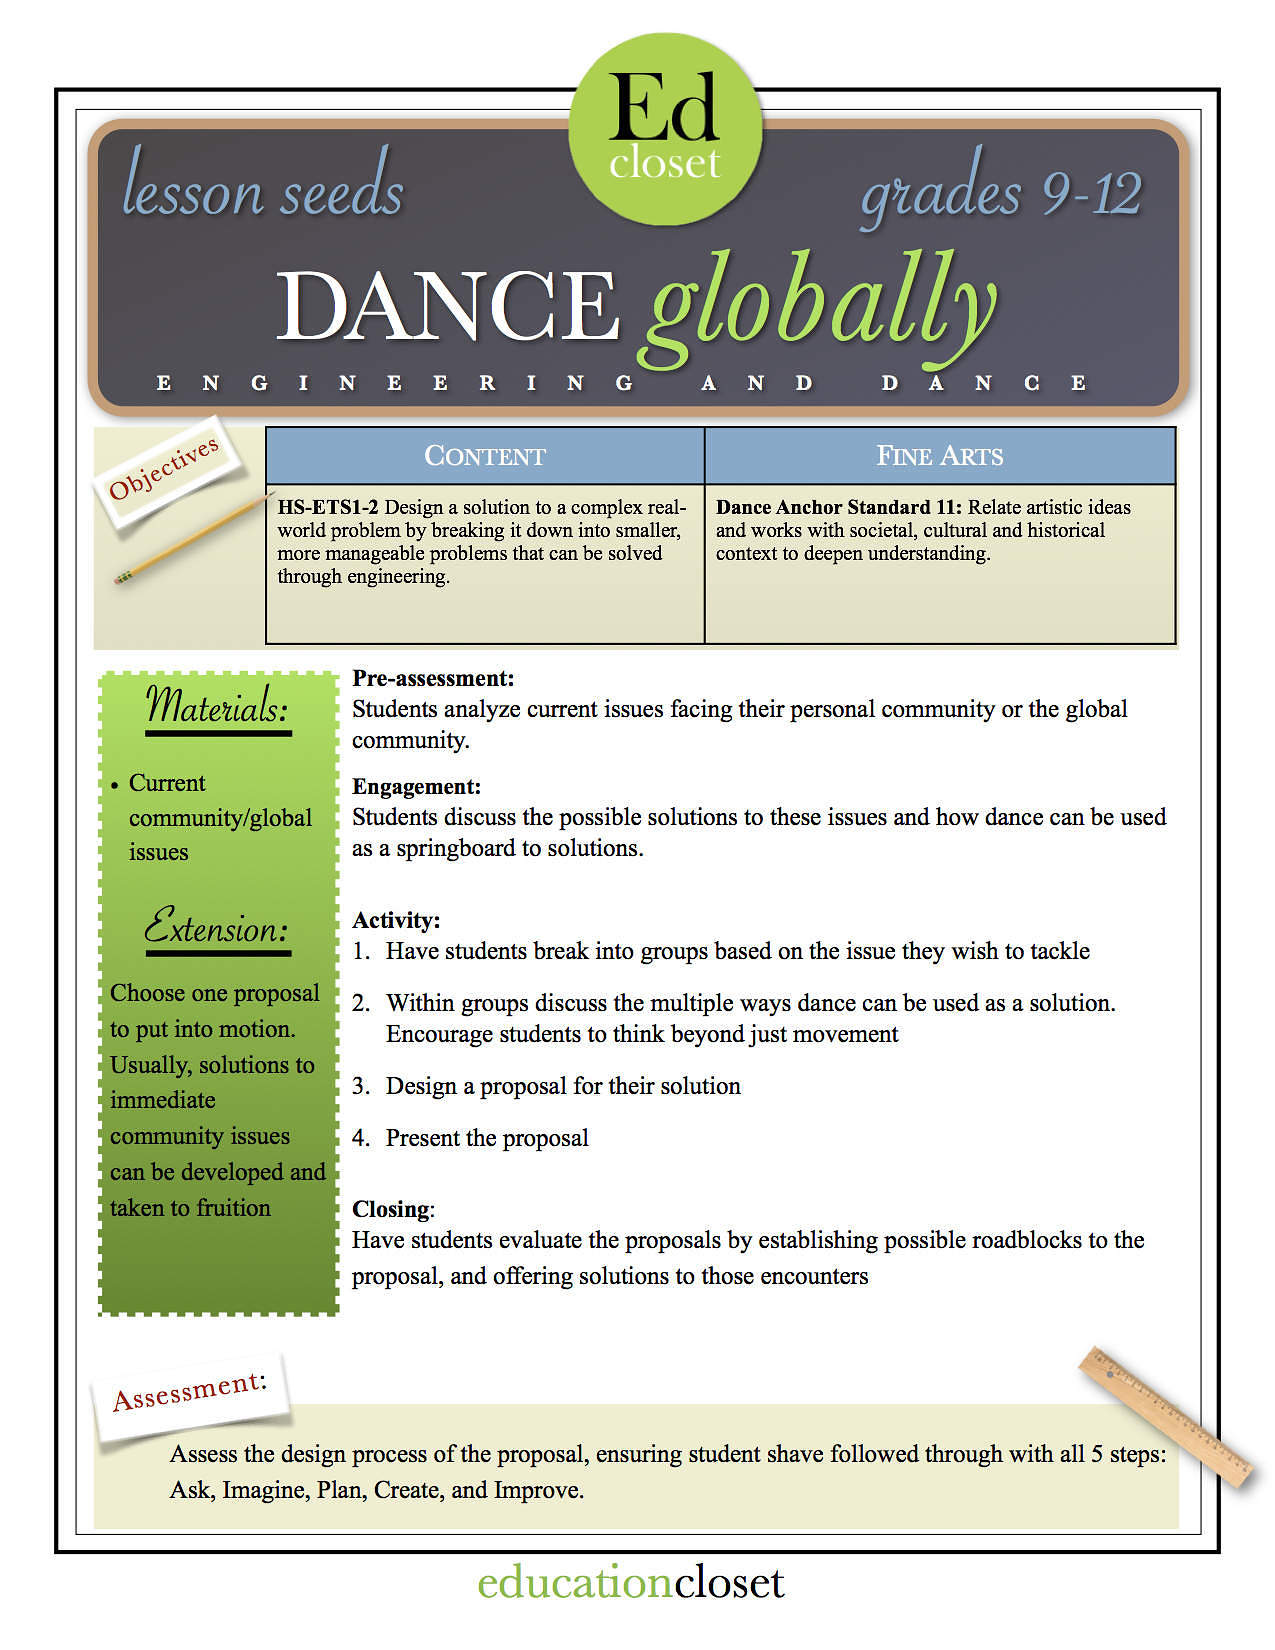 dance globally, Studio STEAM-Up Recap, Education Closet